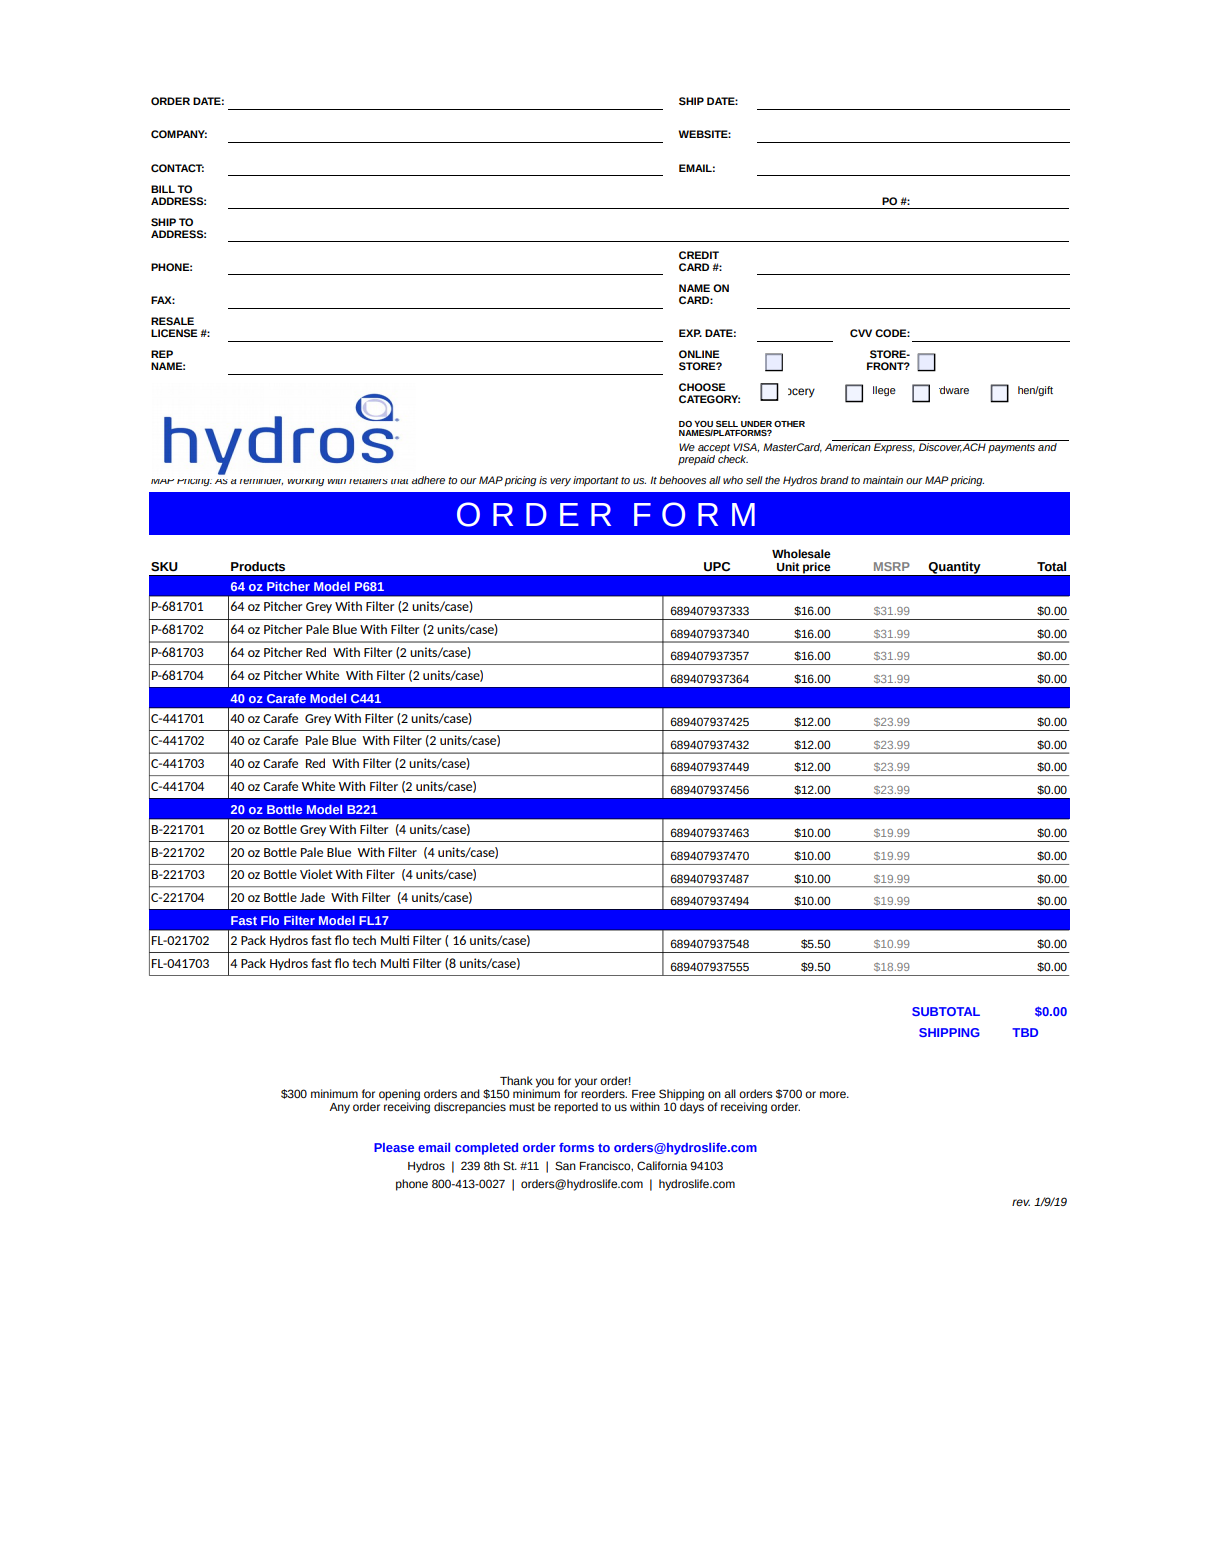 Hydros Wholesale Order Form